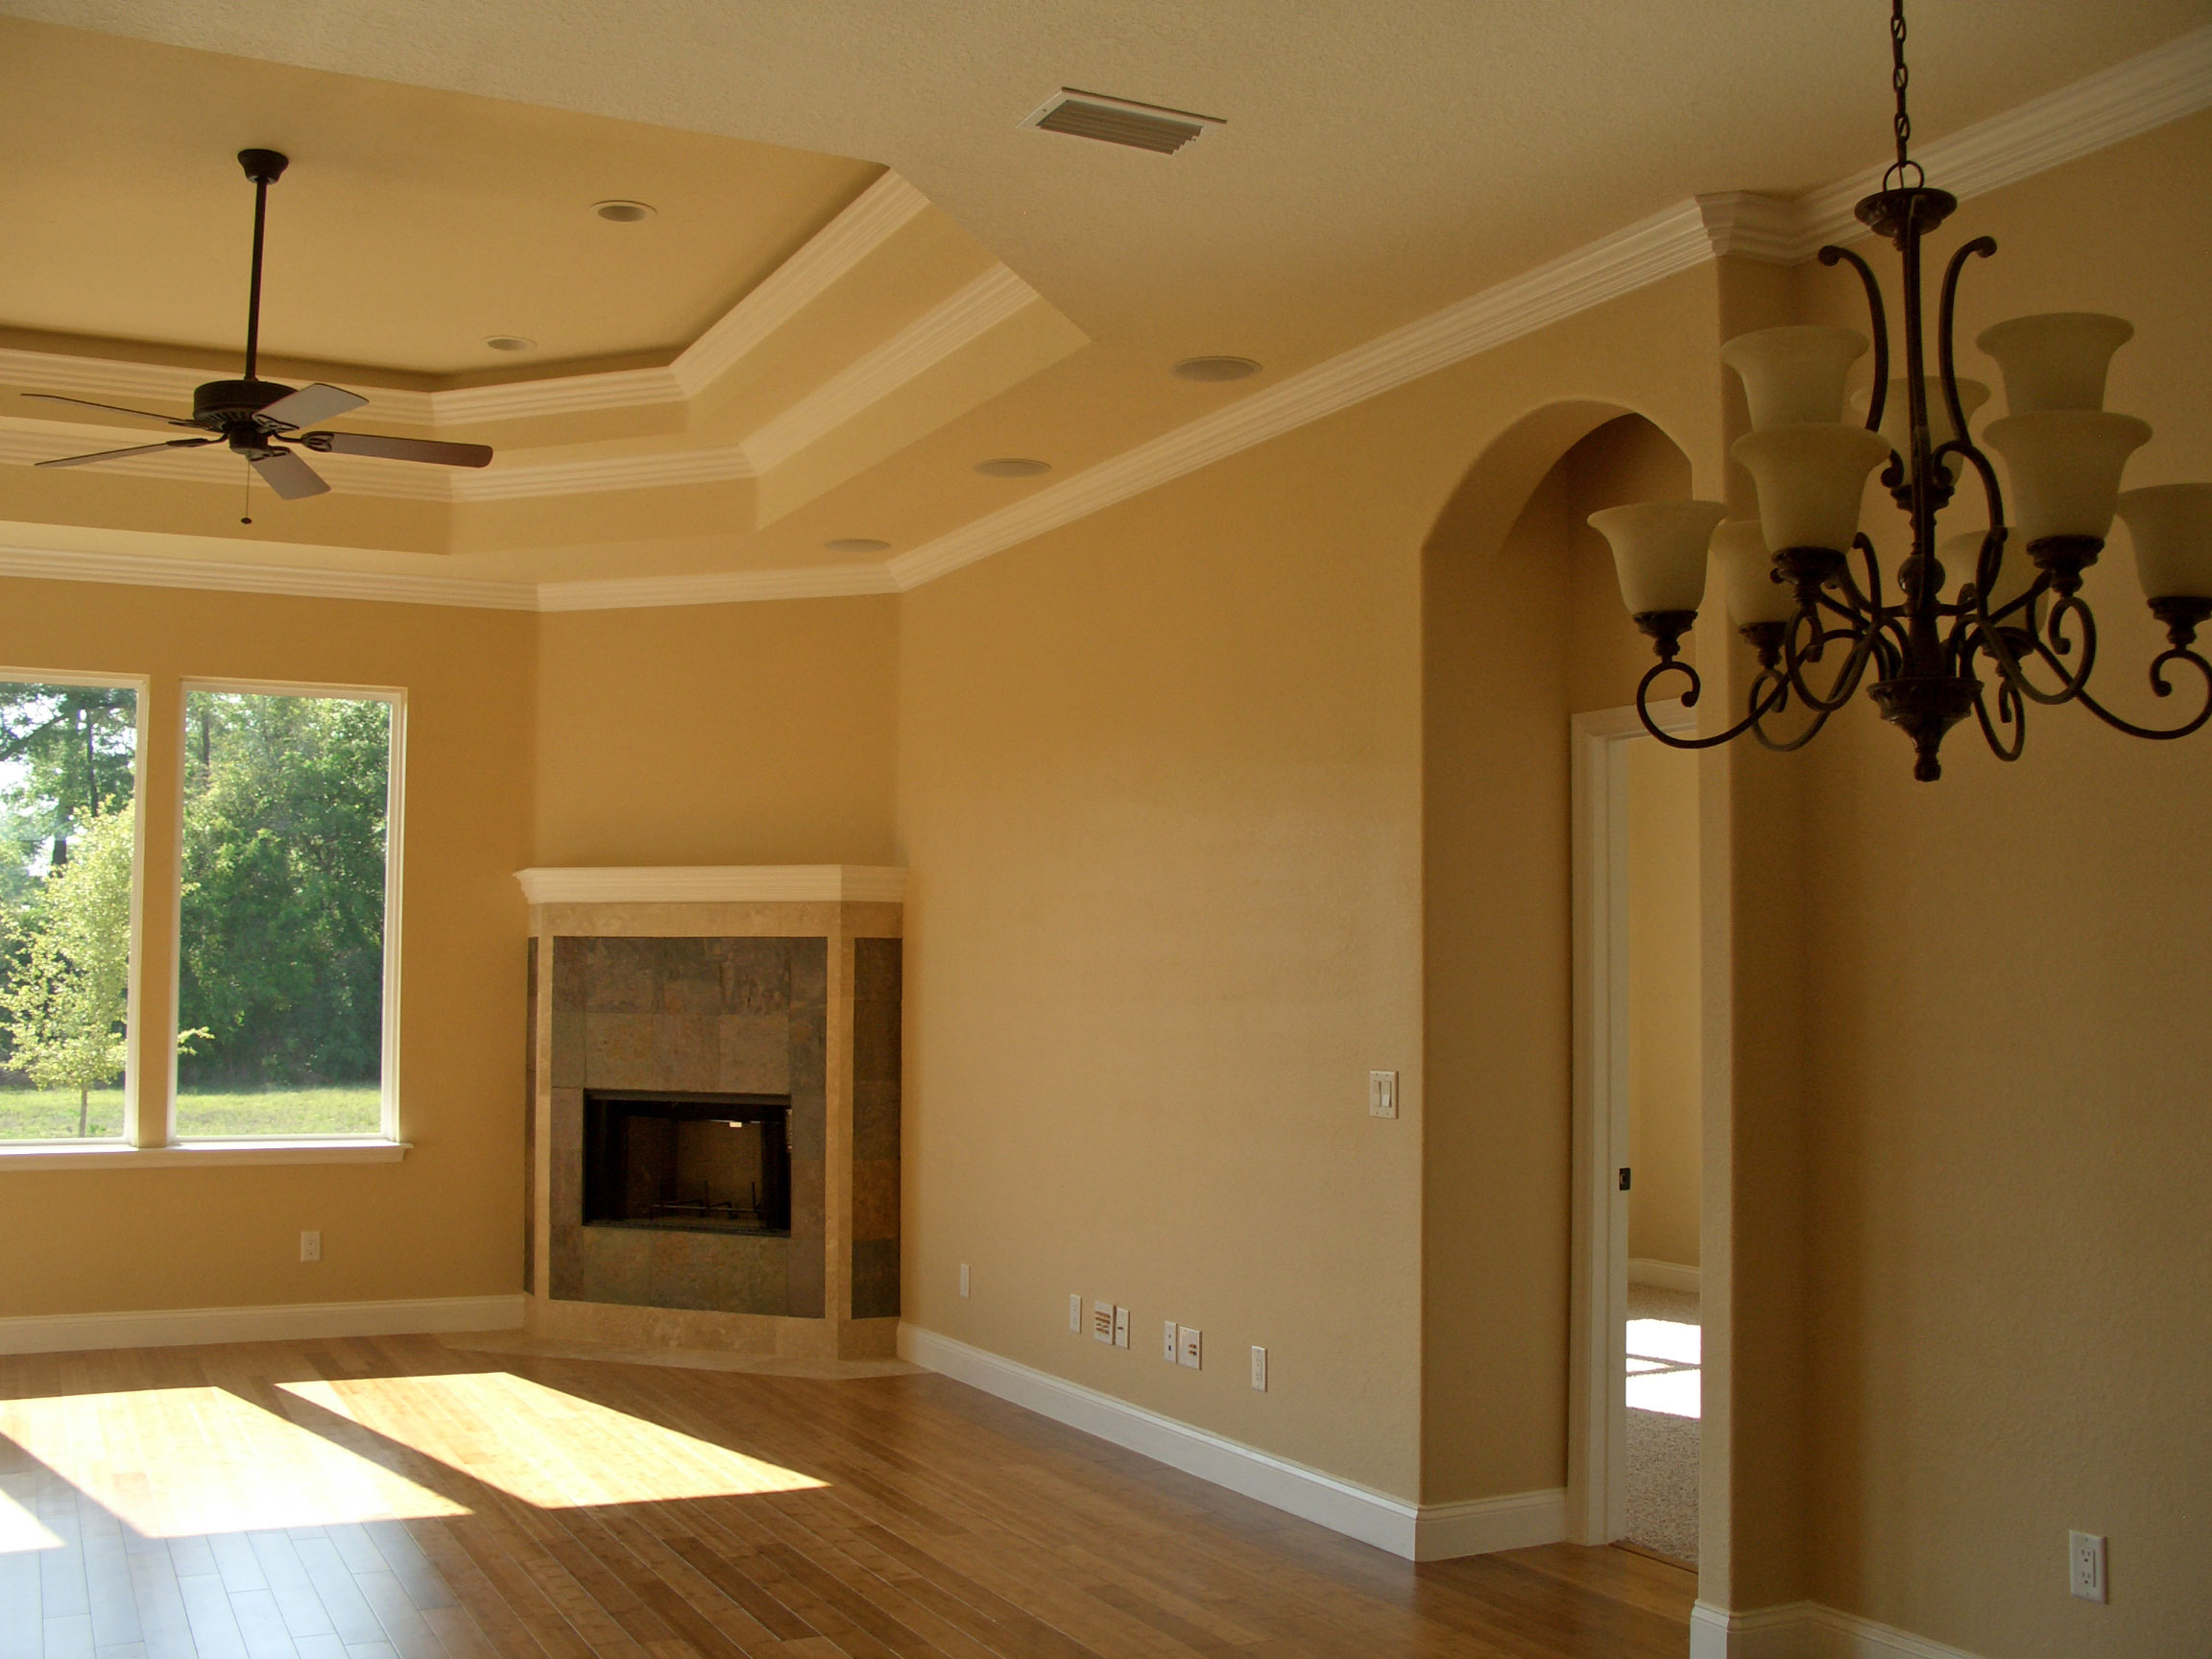 Double Tray Ceiling: Flickr - Photo Sharing